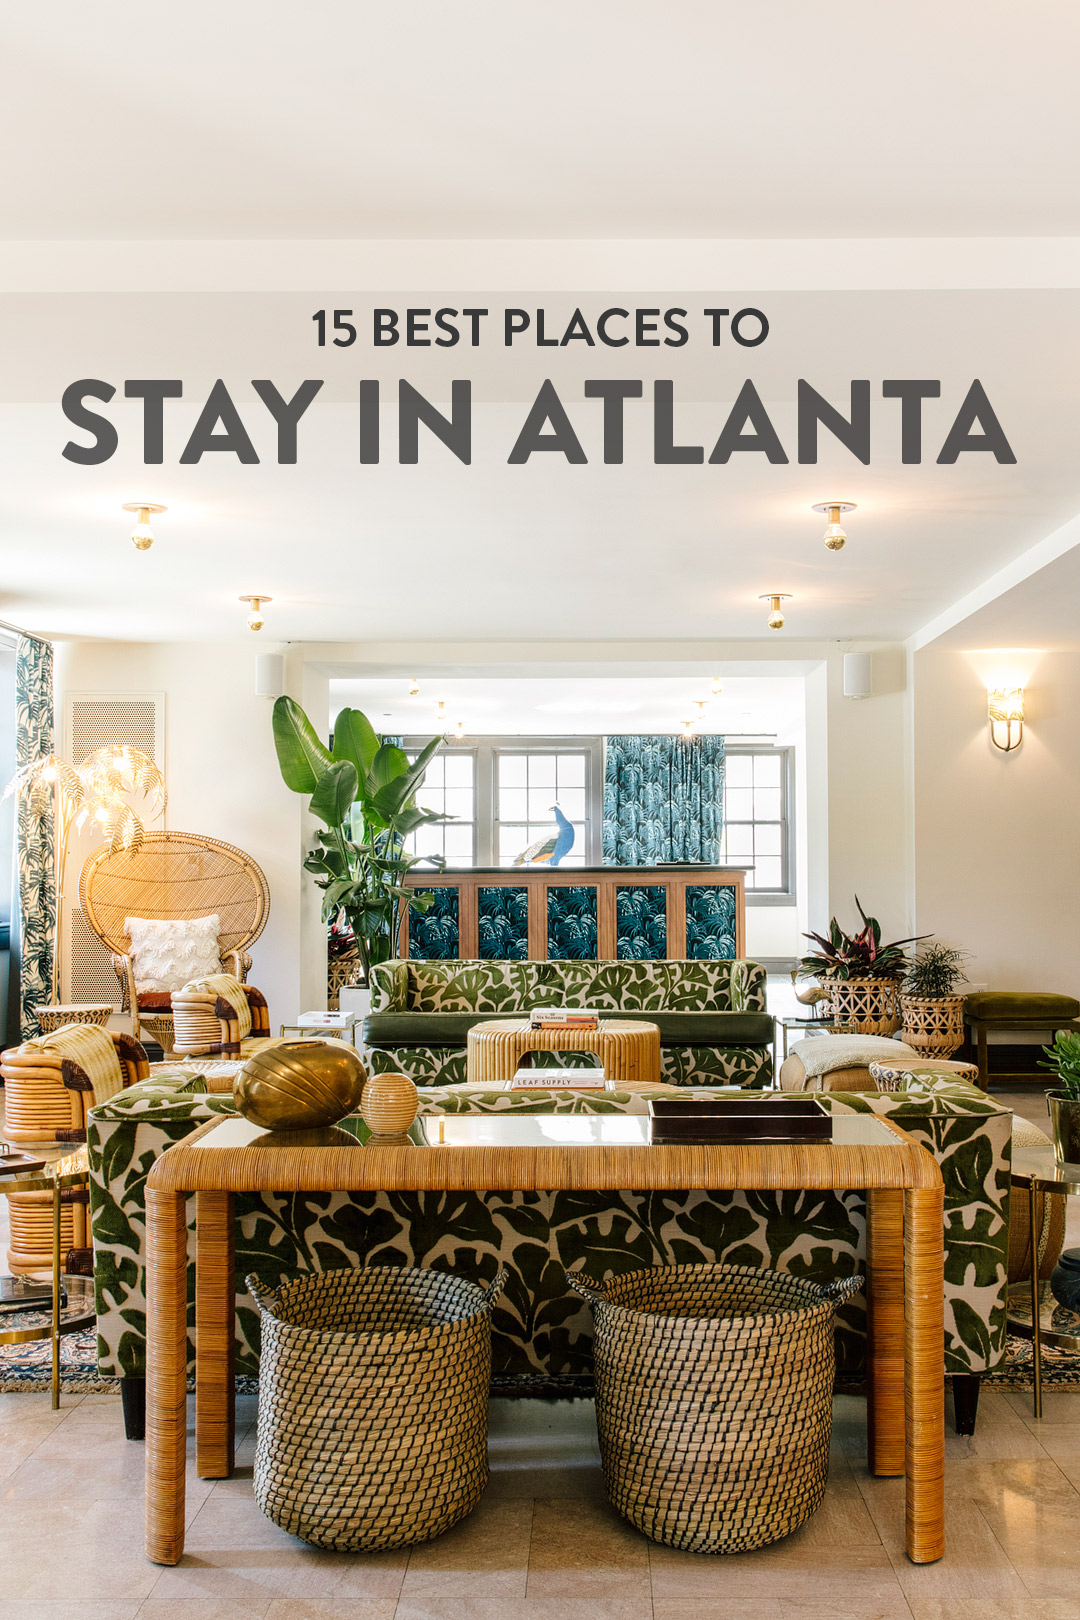 Best Places To Stay In Atlanta Local Adventurer Travel Blog